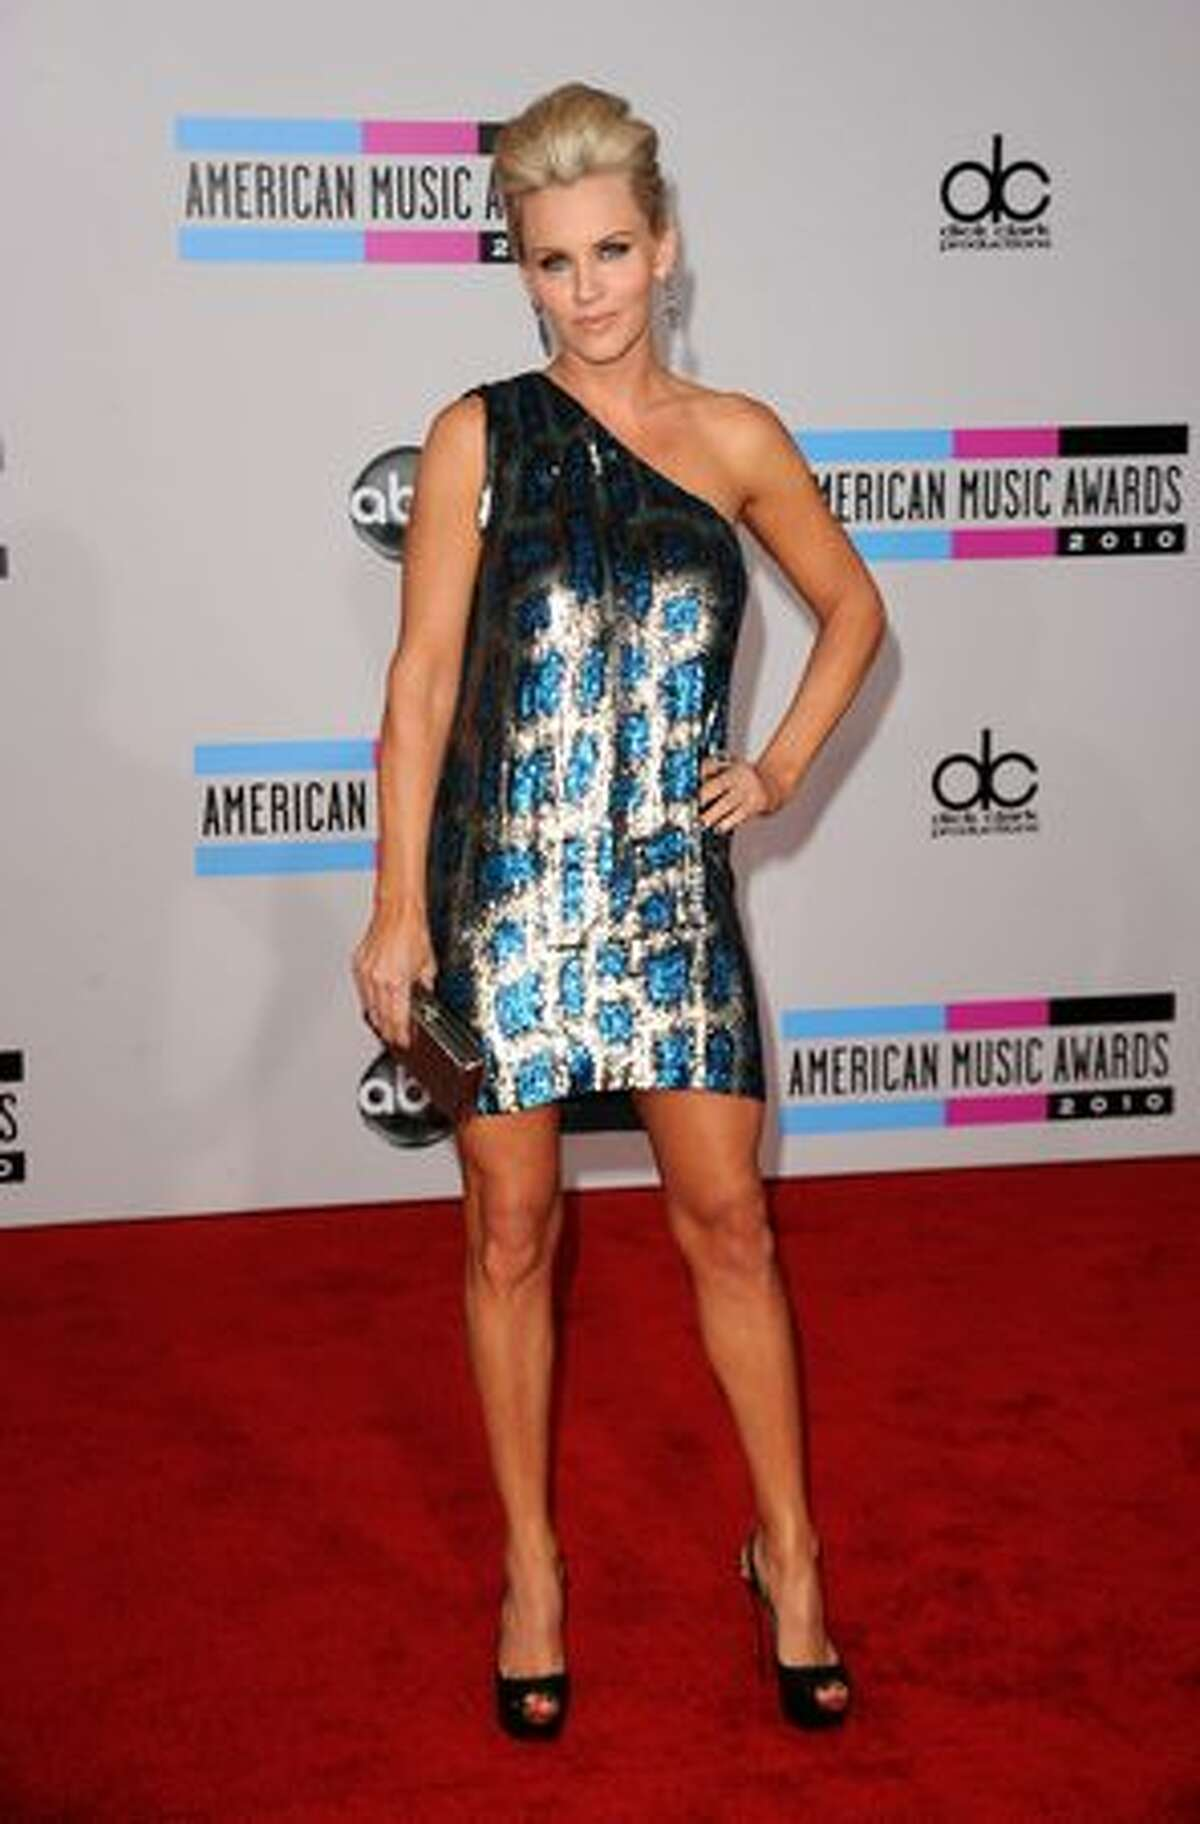 Actress/comedian Jenny McCarthy arrives at the 2010 American Music Awards held at Nokia Theatre L.A. Live in Los Angeles.